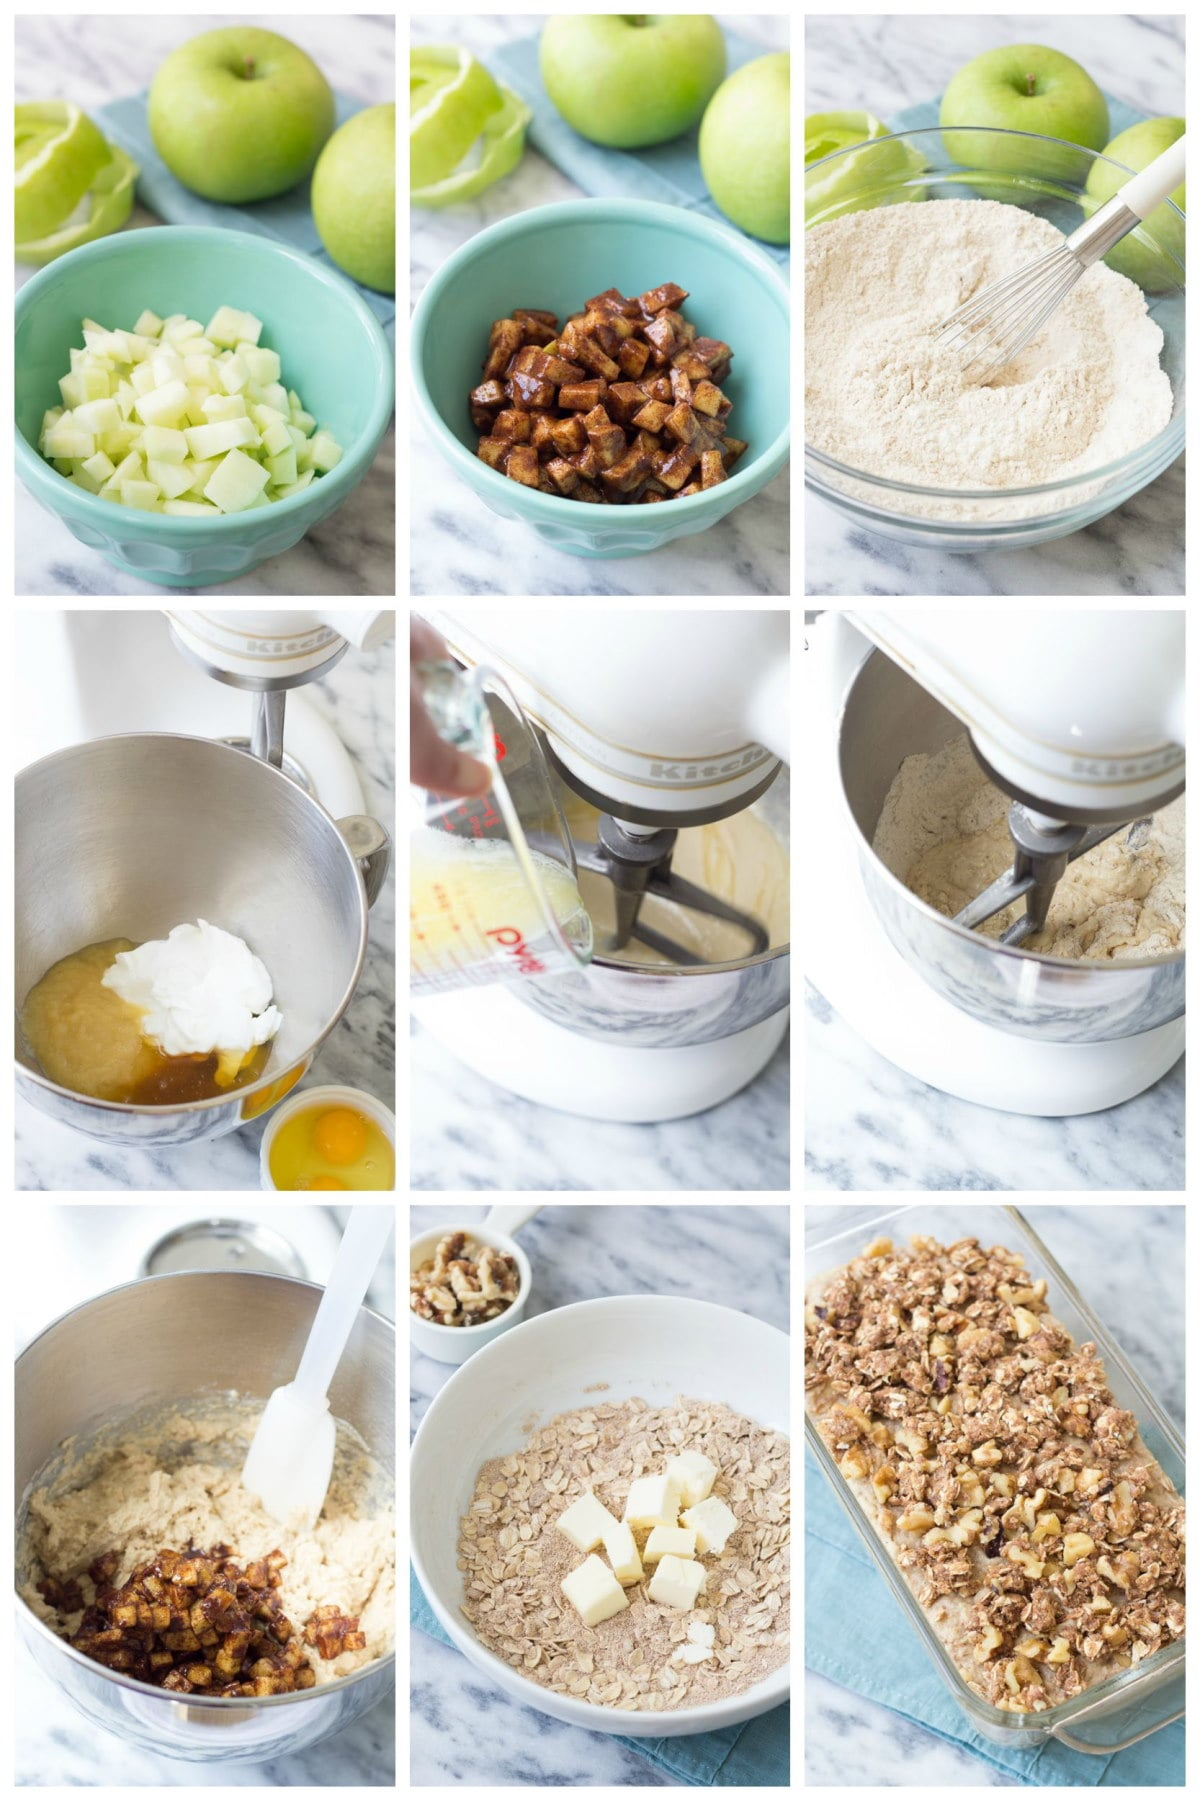 steps for making apple bread